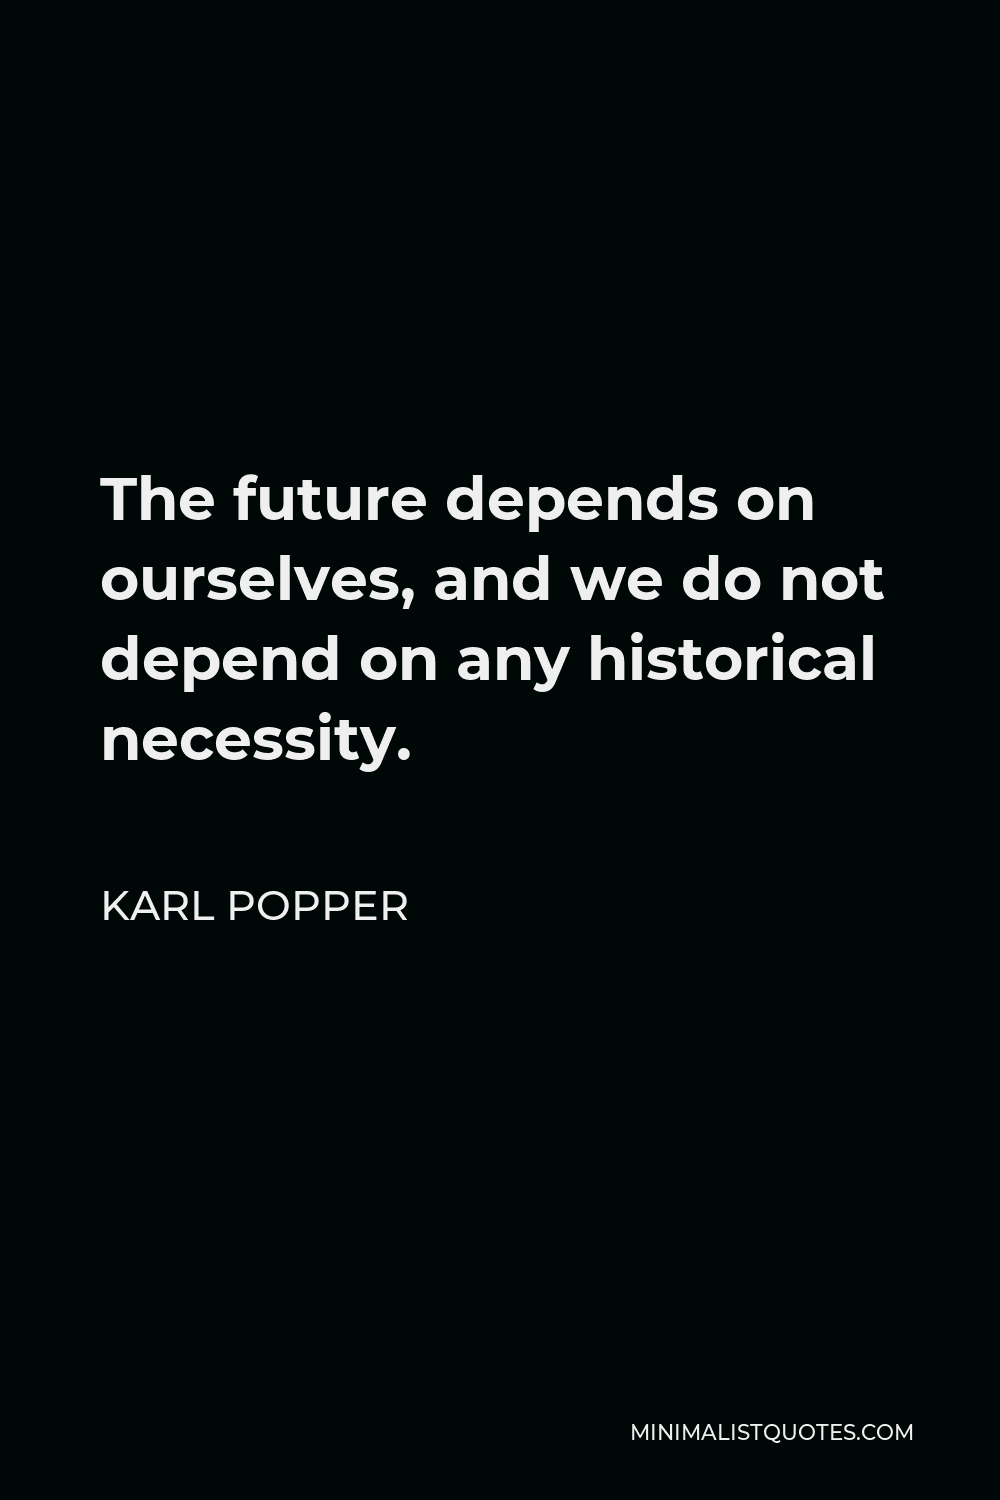 Karl Popper Quote - The future depends on ourselves, and we do not depend on any historical necessity.